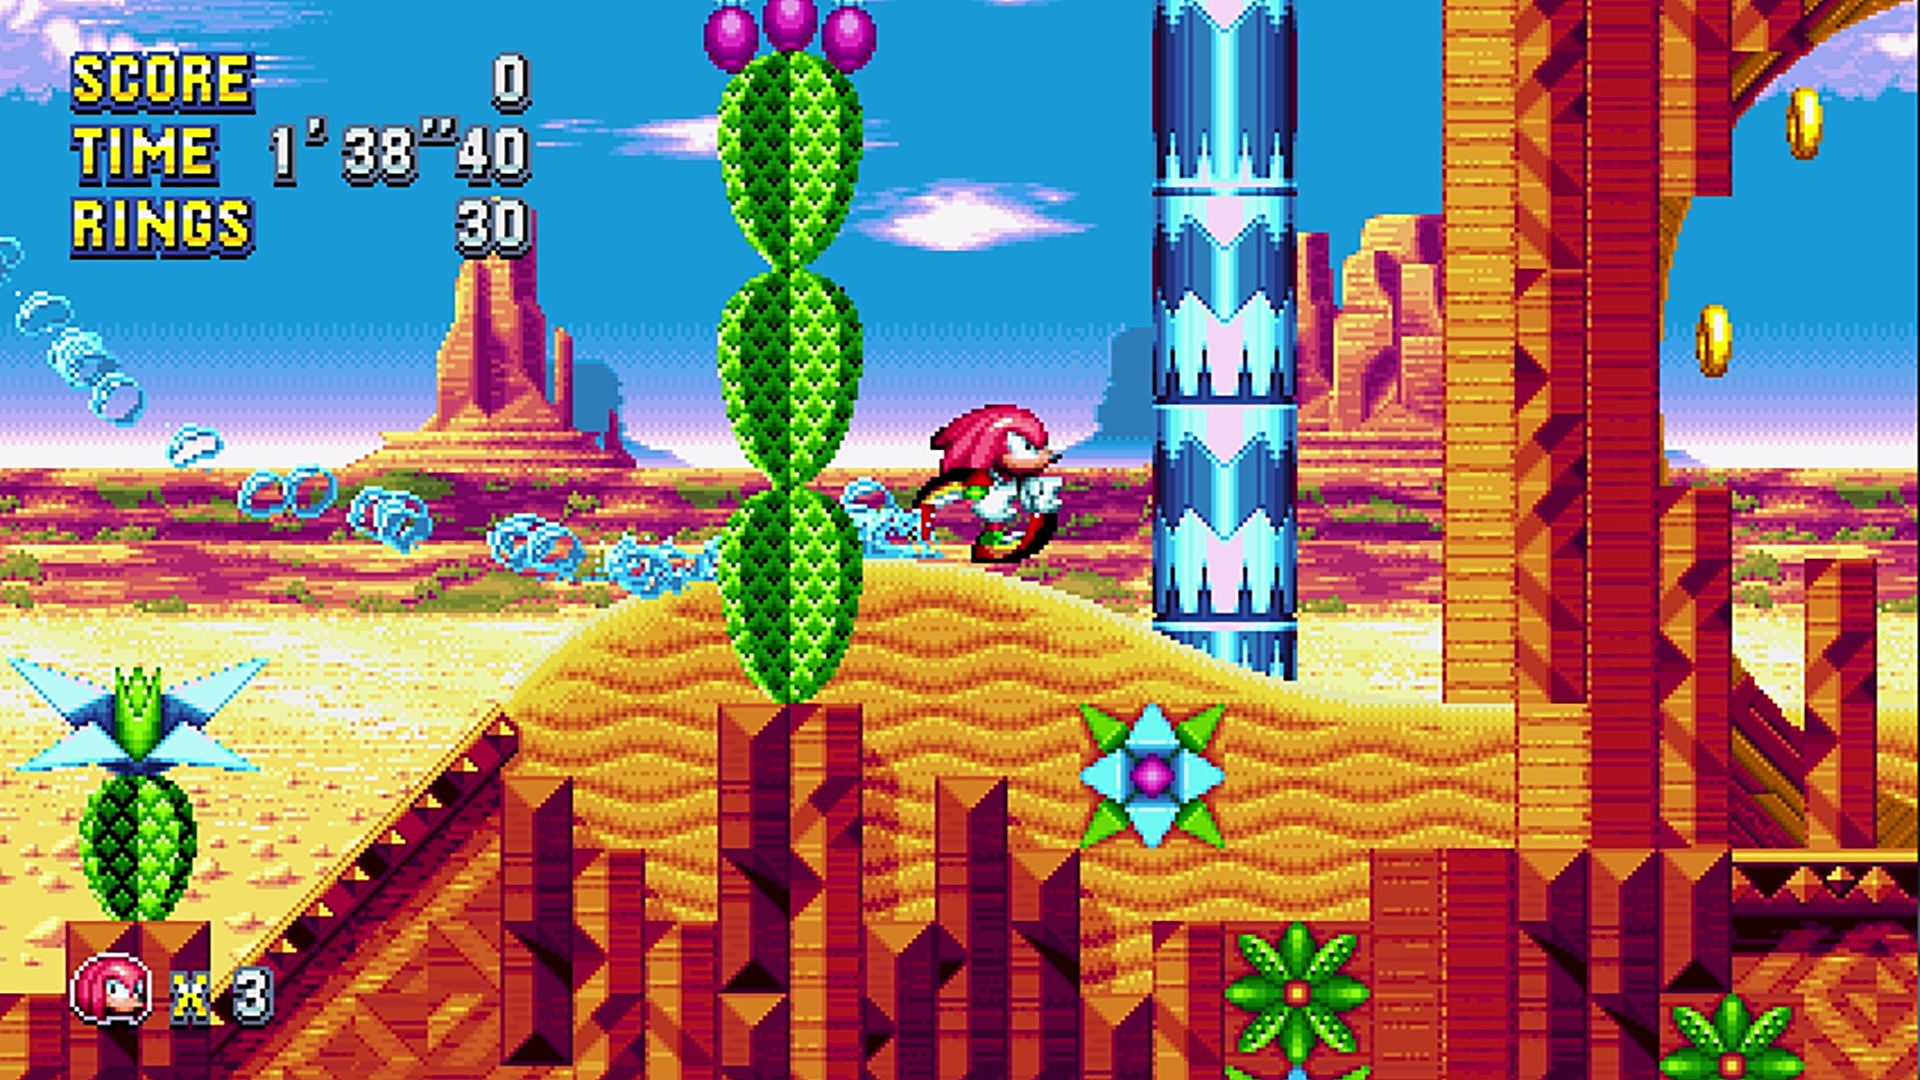 Knuckles in Sonic Mania